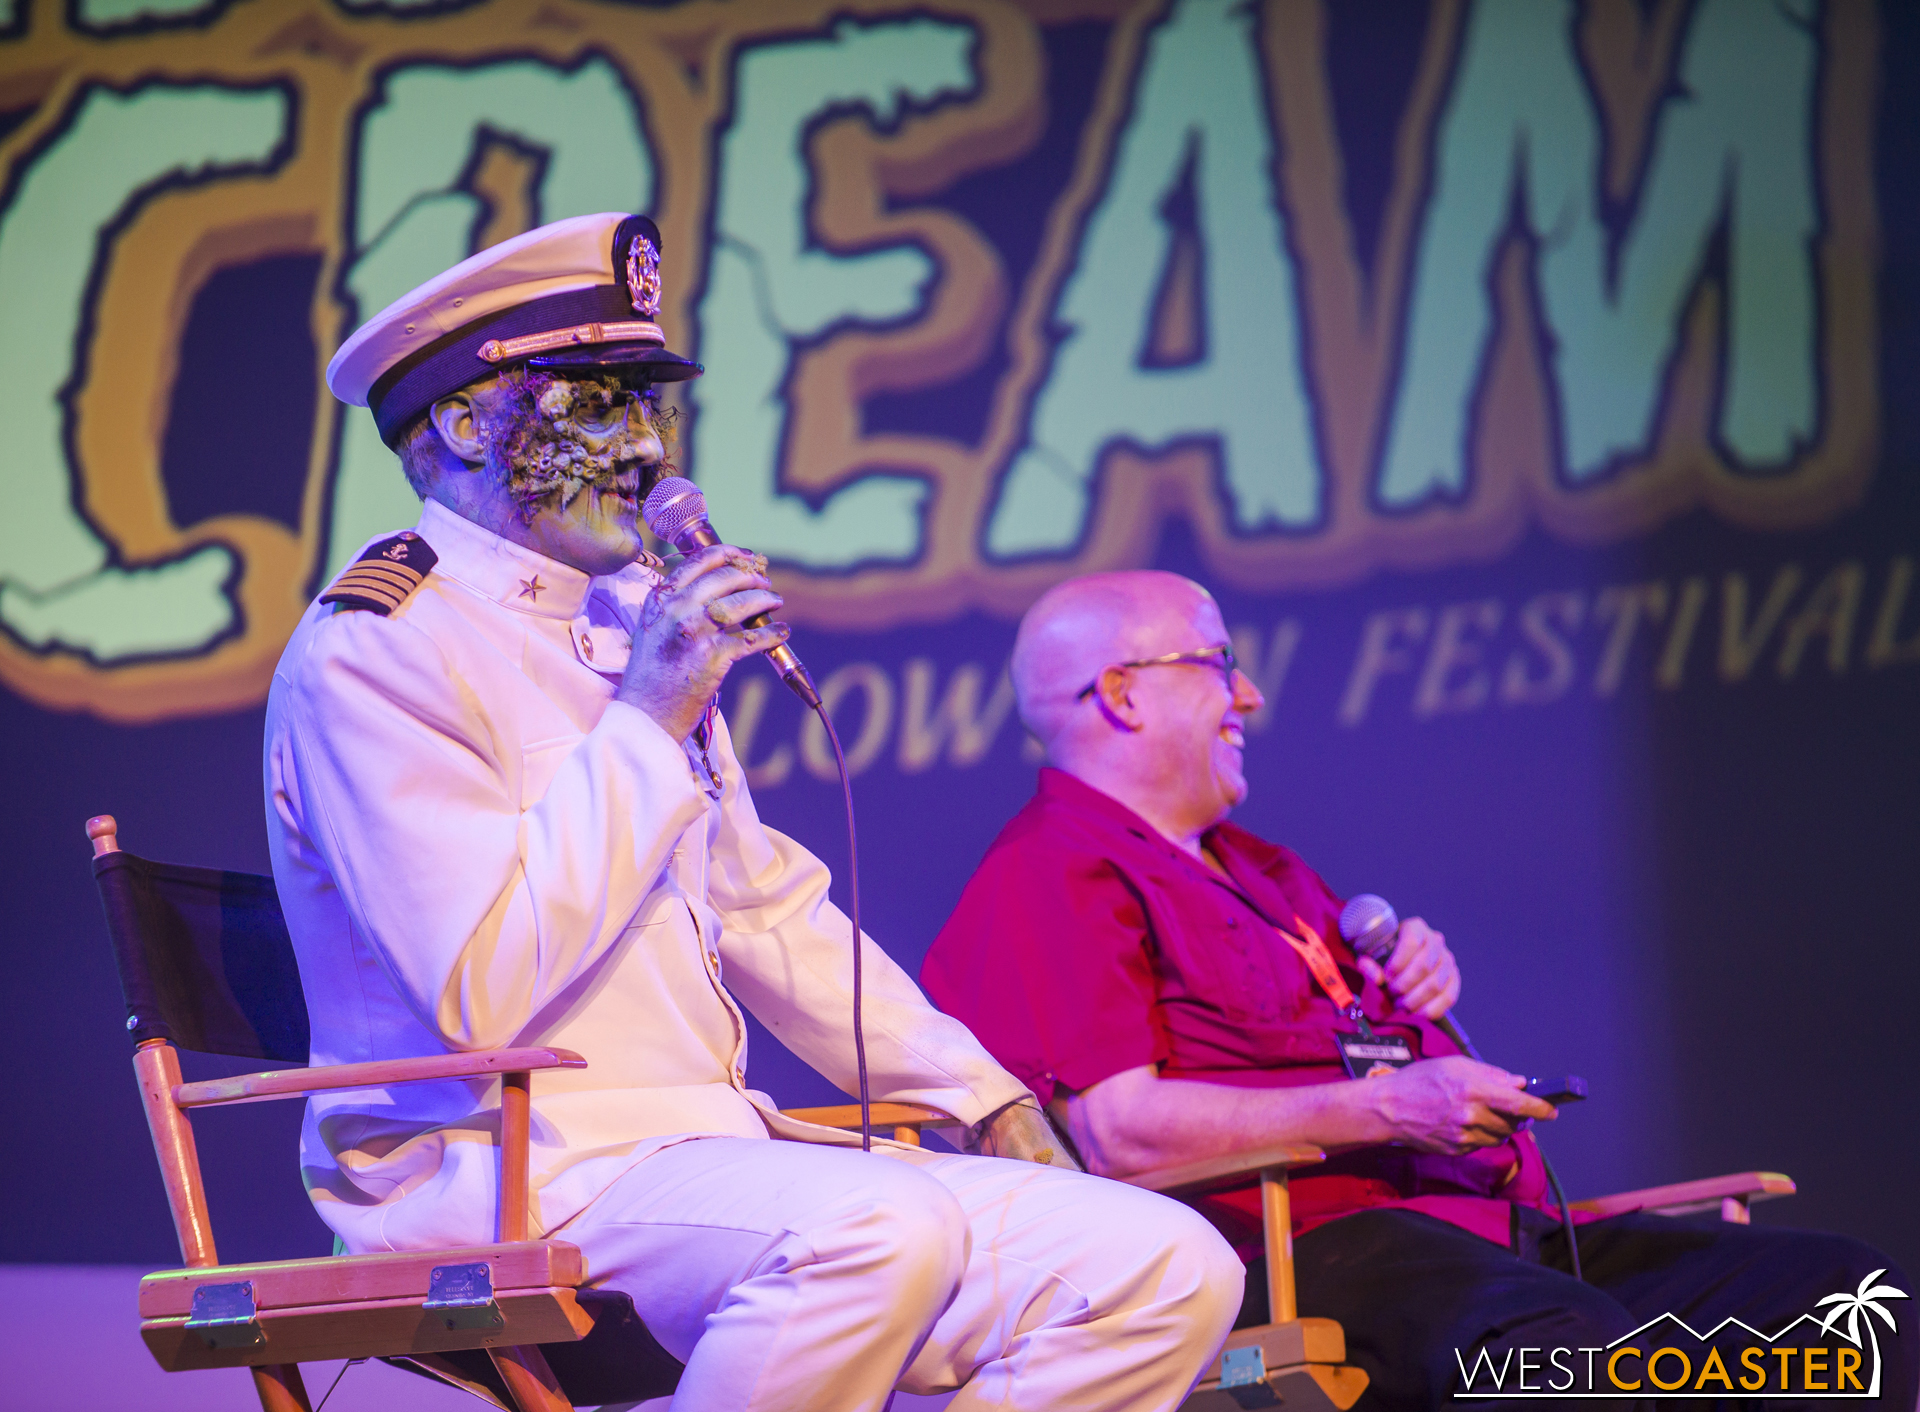 Returning mazes for 2016 include Deadrise, Soulmate, B340, Lullaby, and The Circus. The first three have been redesigned to various significant extents and will feature longer and different layouts and even access to previously private parts of the ship. Soulmate will even venture by the infamous Propeller Room. Meanwhile, The Circus will return last year's ball pit and add more than one route through the maze. Also, bars have been added to every line. Cuz booze.